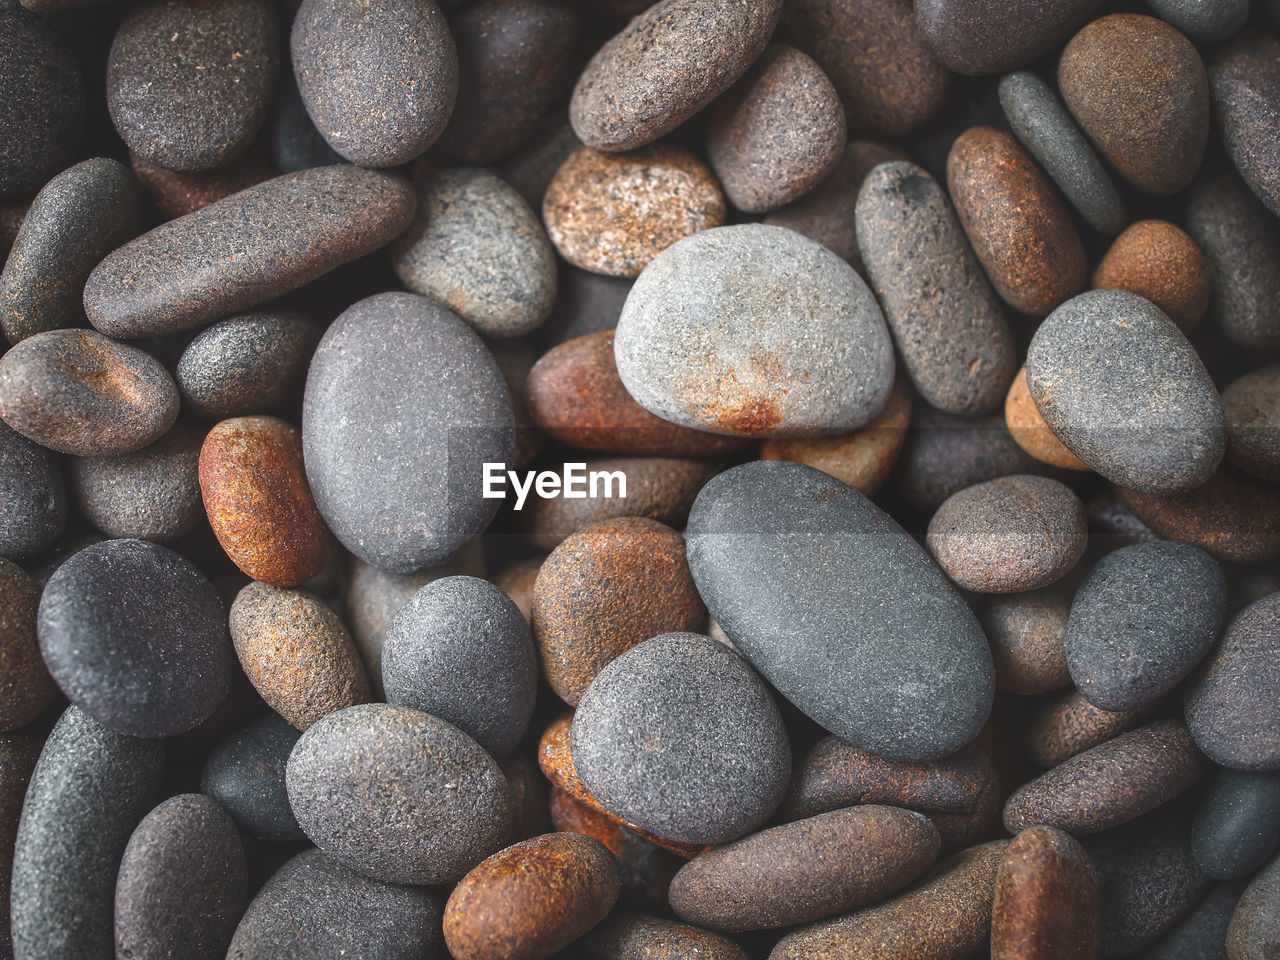 Top view of river pebbles, used as wallpaper or background.